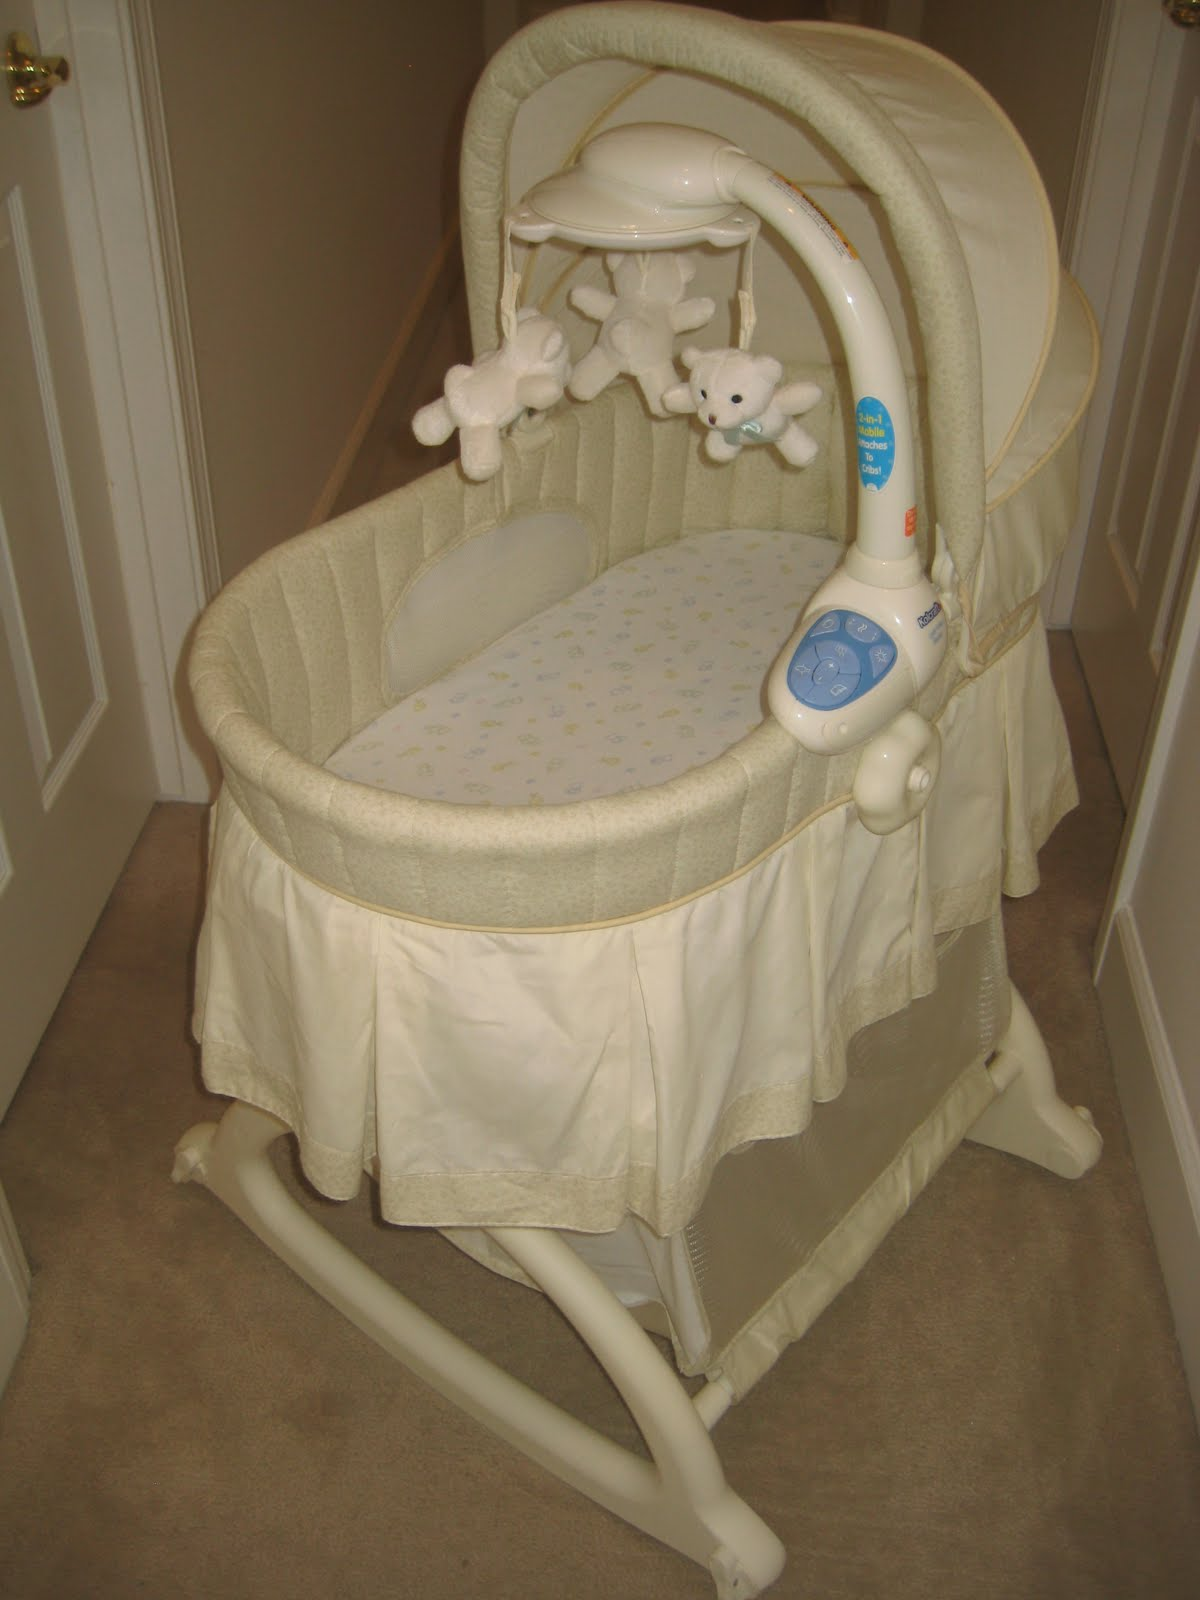 Baby Bassinet Pottery Barn Kid 39;s Clothes And More Store Kolcraft Cuddle 39;n Care